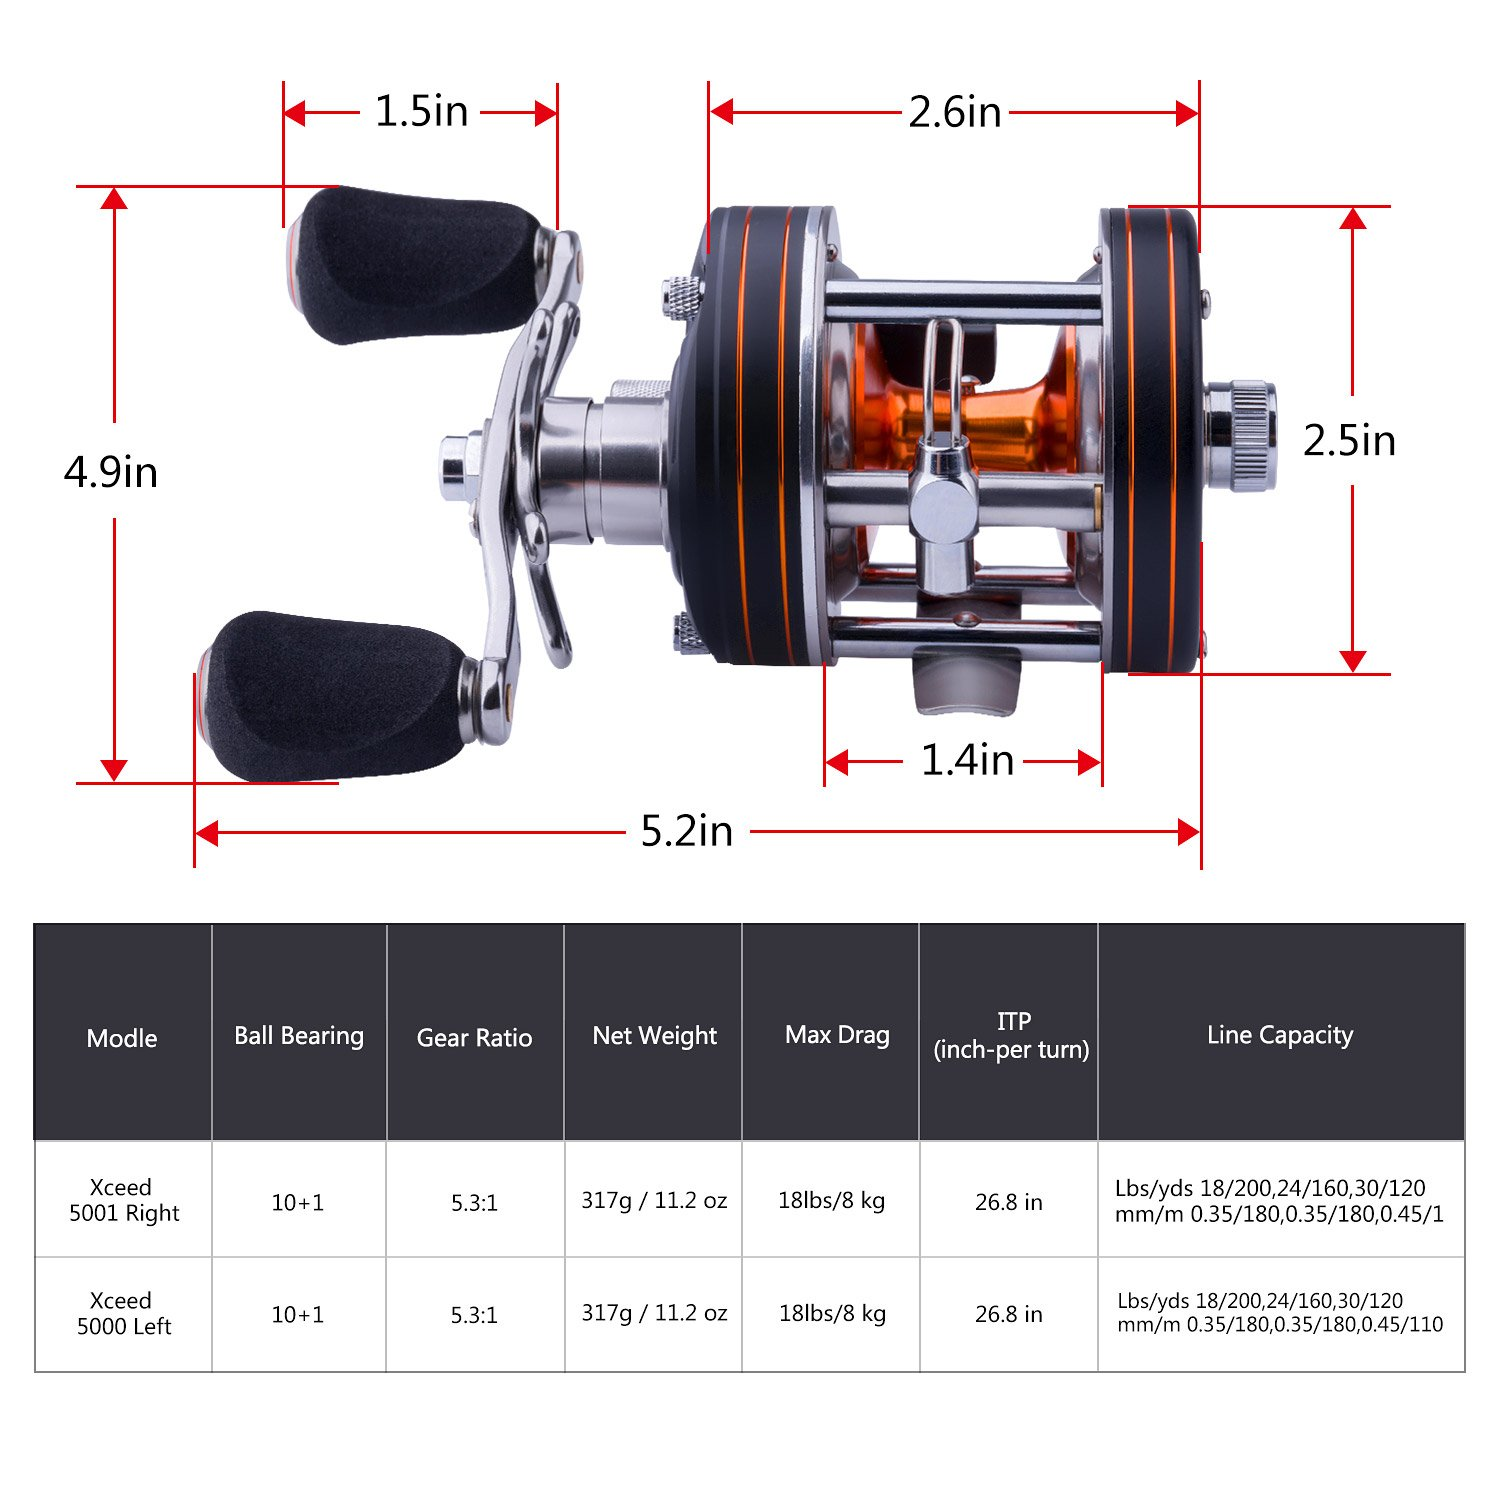 Goture Xceed Round Baitcasting Reel 10+1BB Lightweight 5 3:1 Reinforced  Metal Body Conventional Saltwater Trolling Reels - Max Drag 18LB